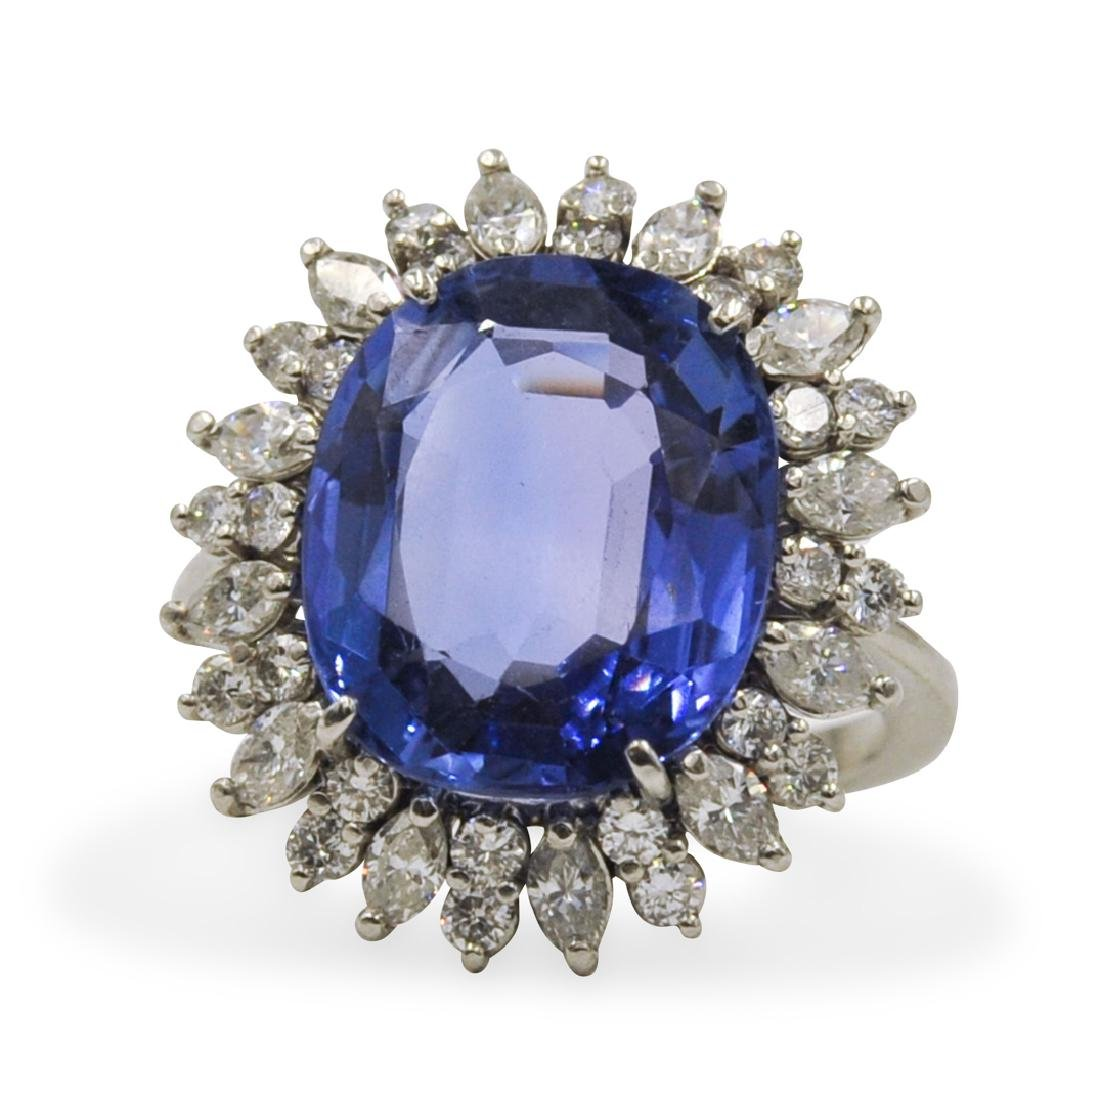 8.49ct Natural Sapphire and Diamond Ring